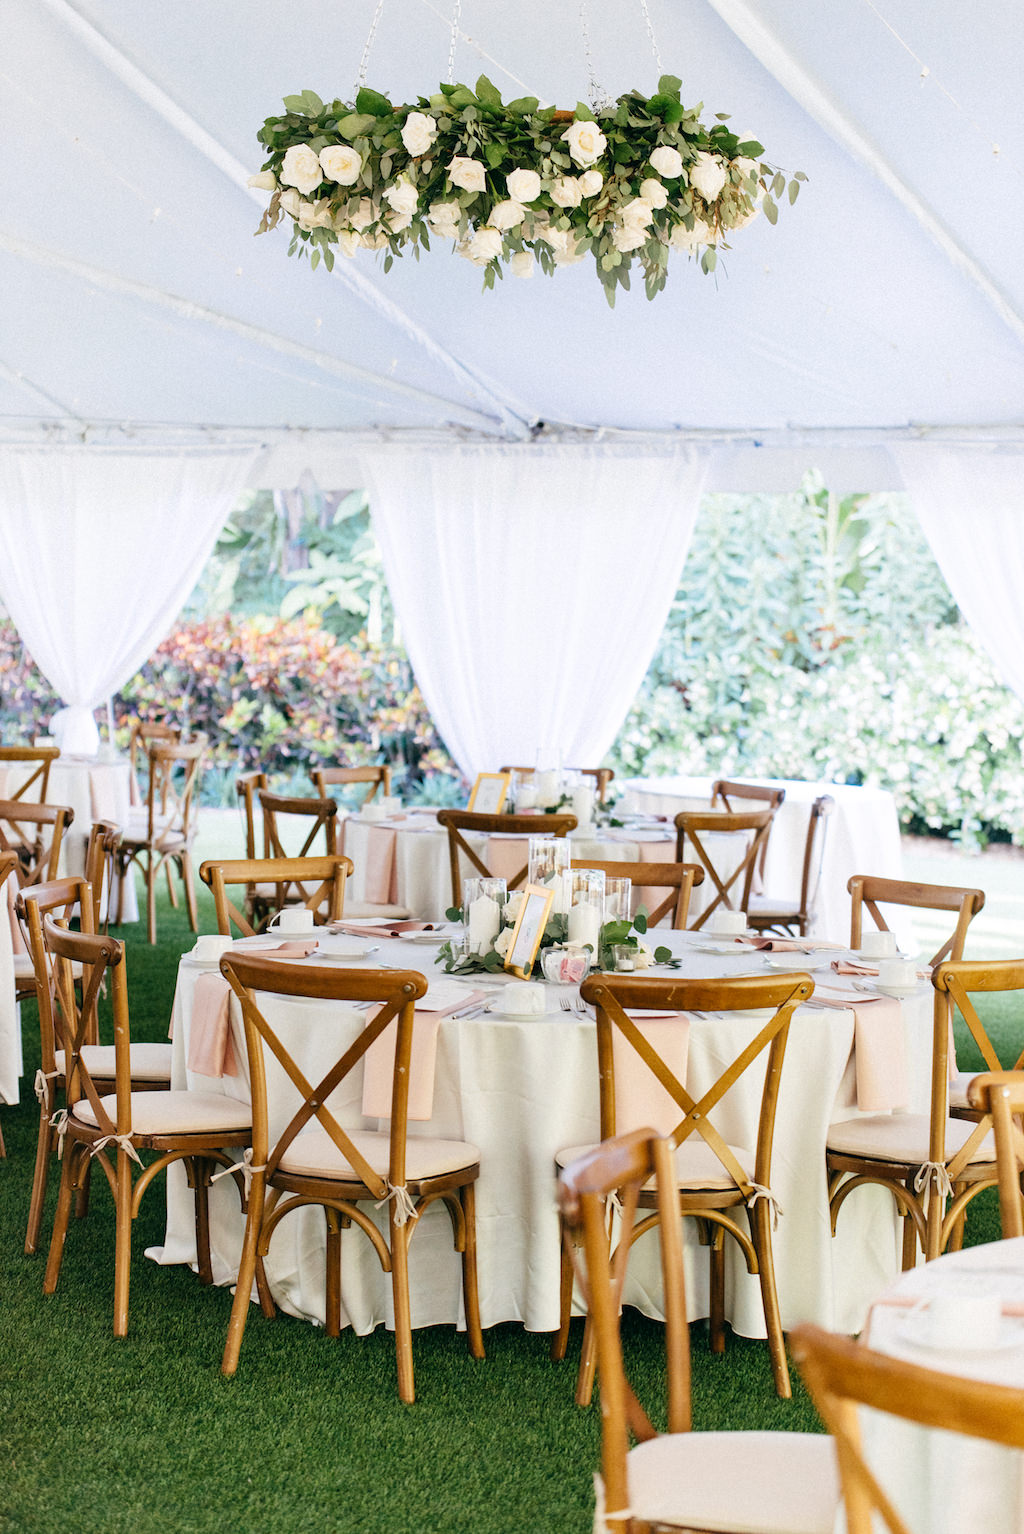 Elegant, Simple, Classic Garden Outdoor Tent Wedding Reception Decor, Hanging Greenery and White Ivory Floral Wreath, String Lights, Round Tables with White Linens, Wooden Crossback Chairs, Hurricane Glass Candlestick Centerpieces | Tampa Bay Wedding Rentals Gabro Event Services